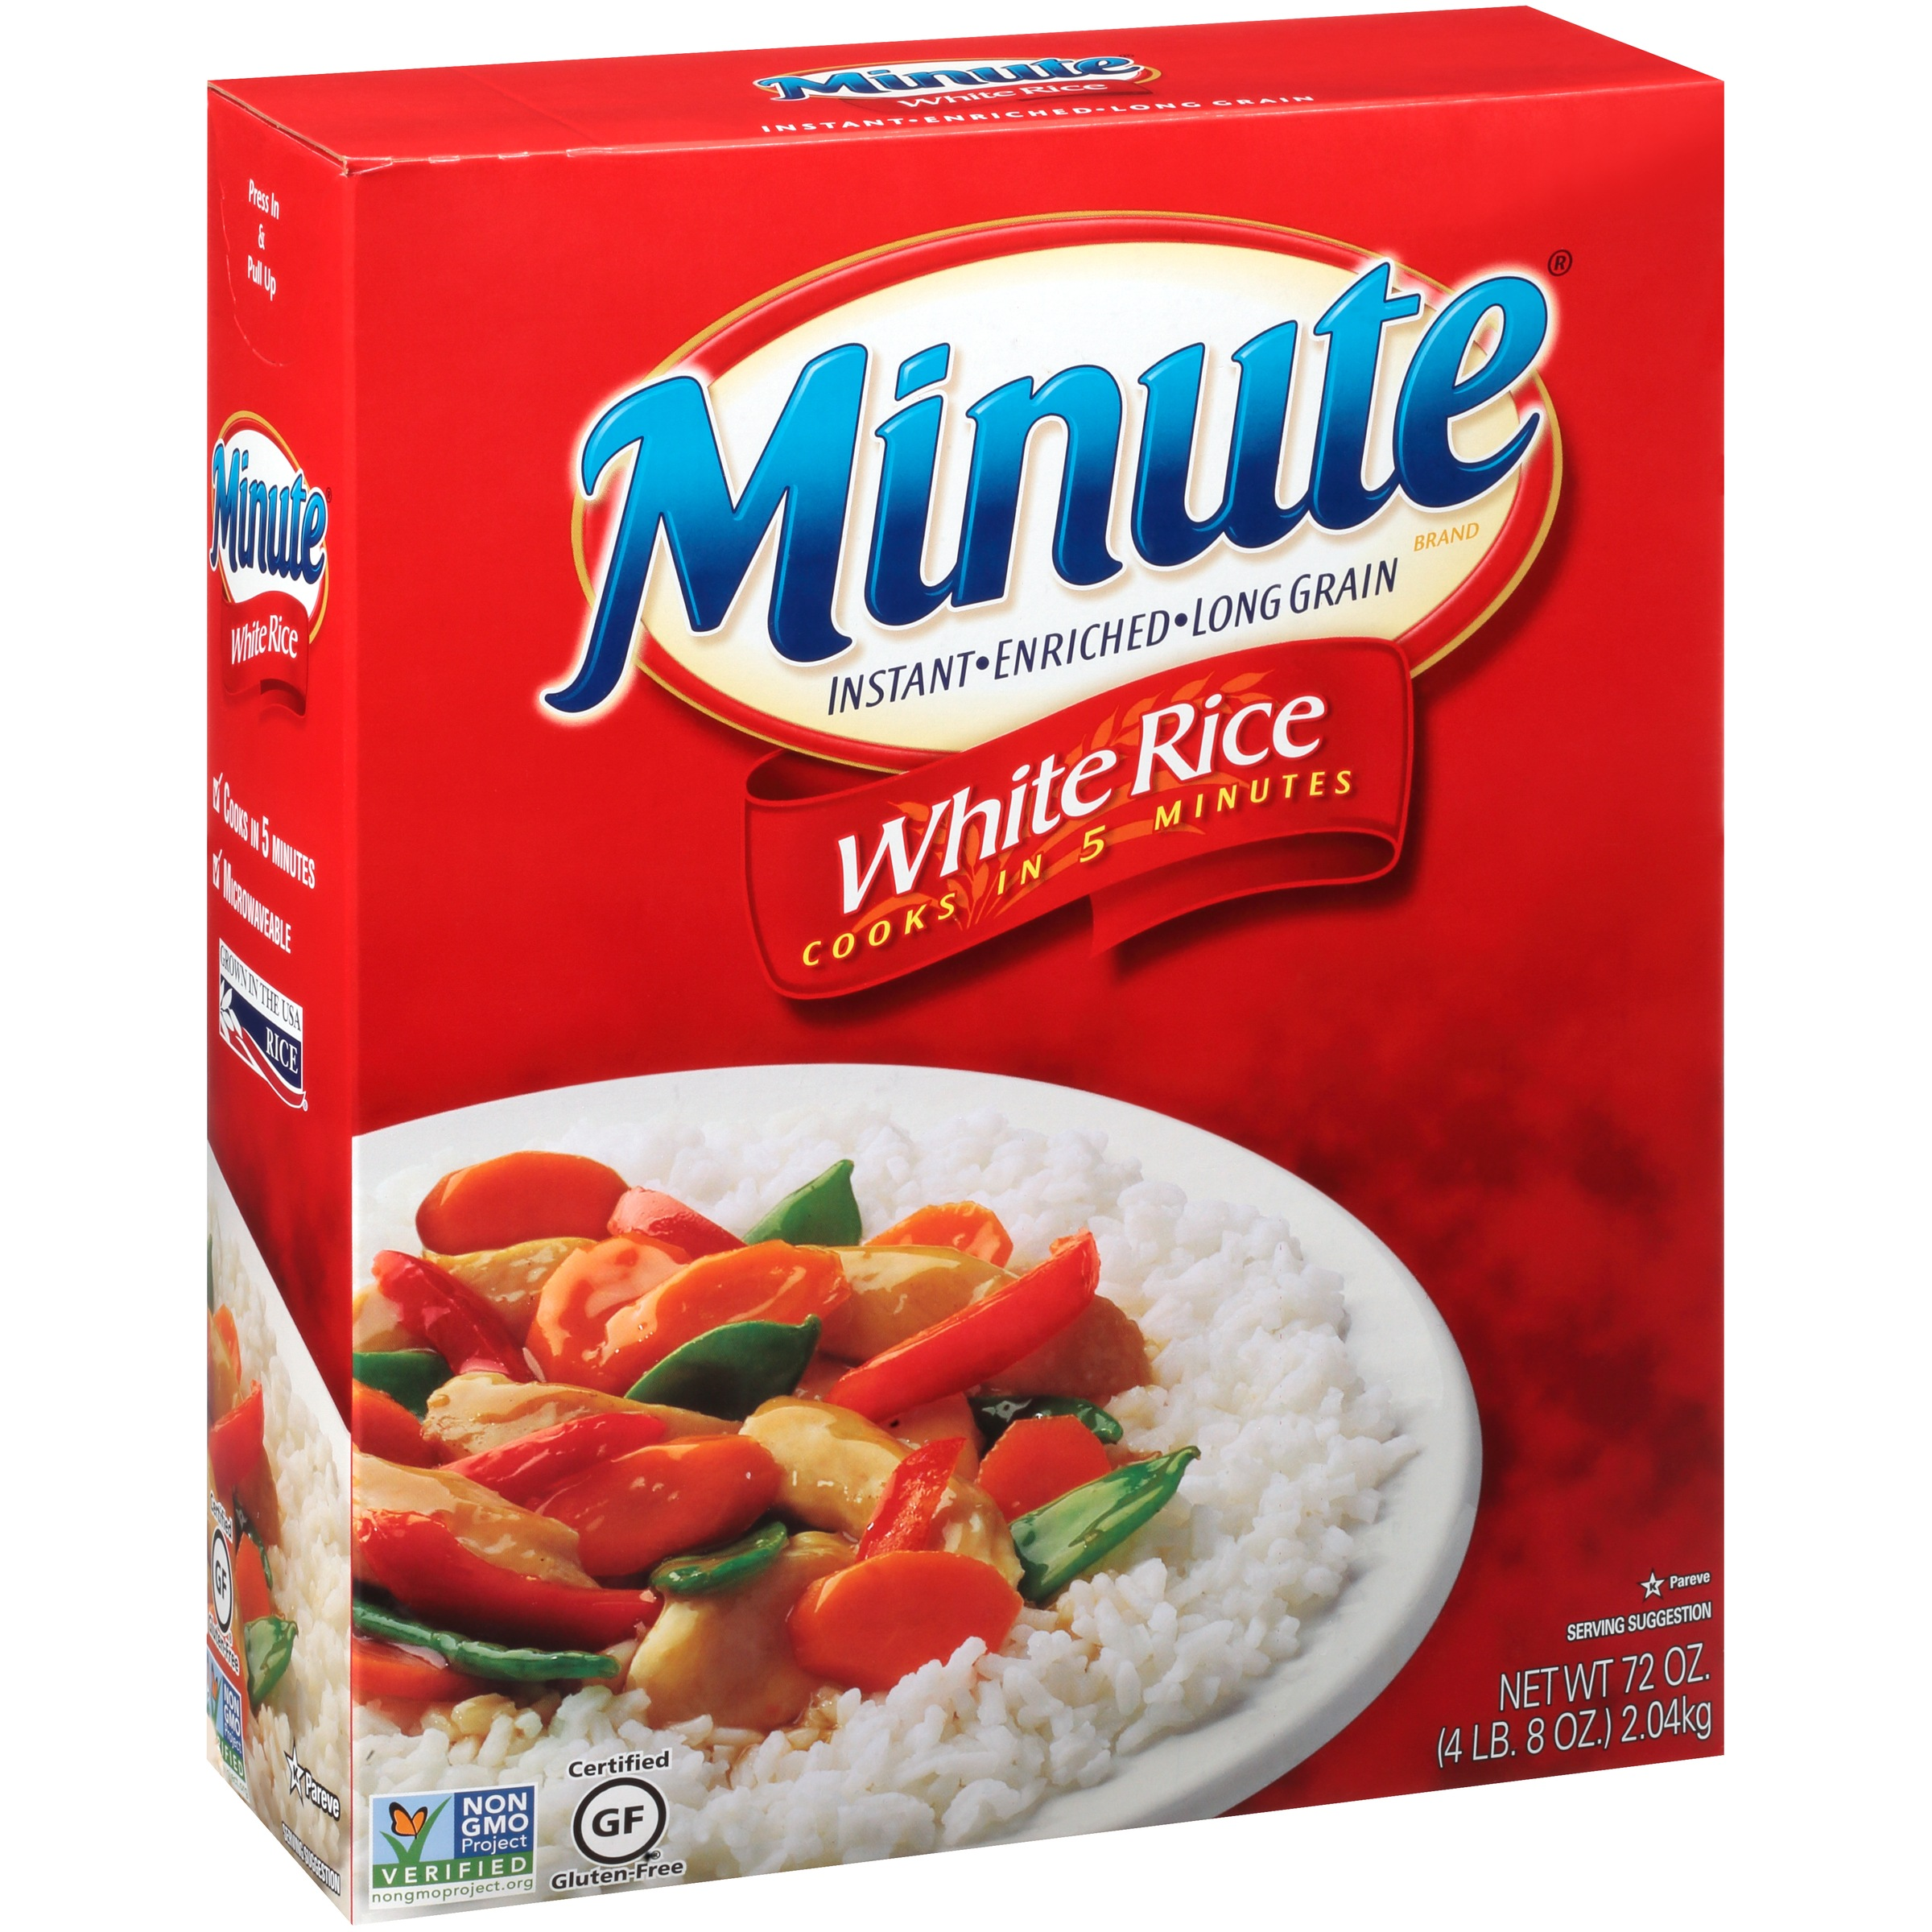 Minute White Instant Enriched Long Grain Rice 72 Oz Box